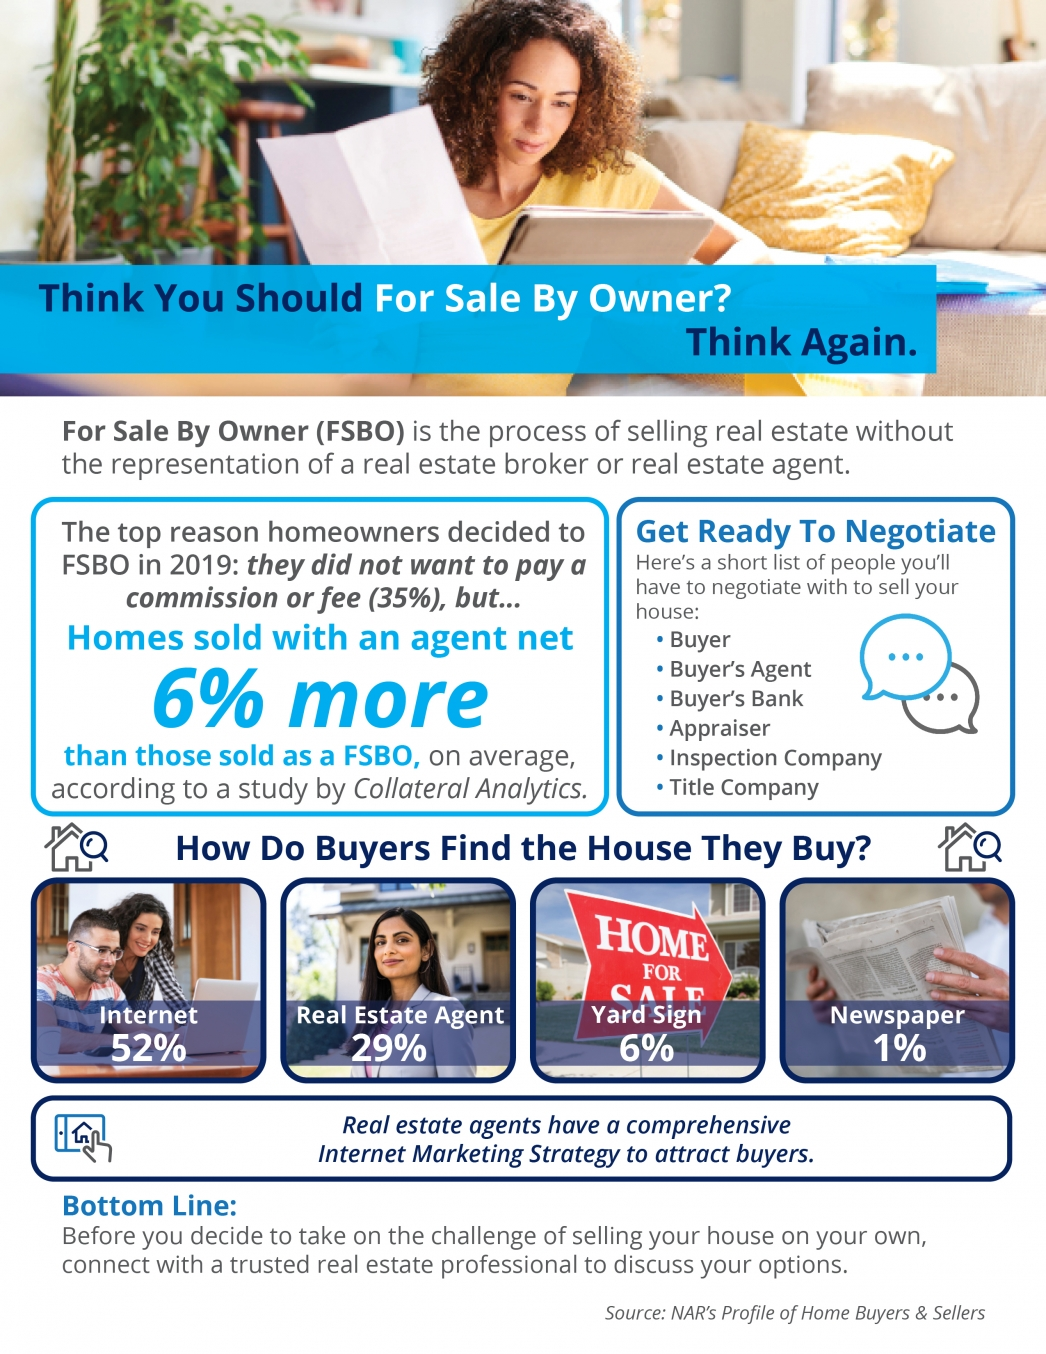 Buy Owner In Utah, Think You Should For Sale By Owner? Think Again